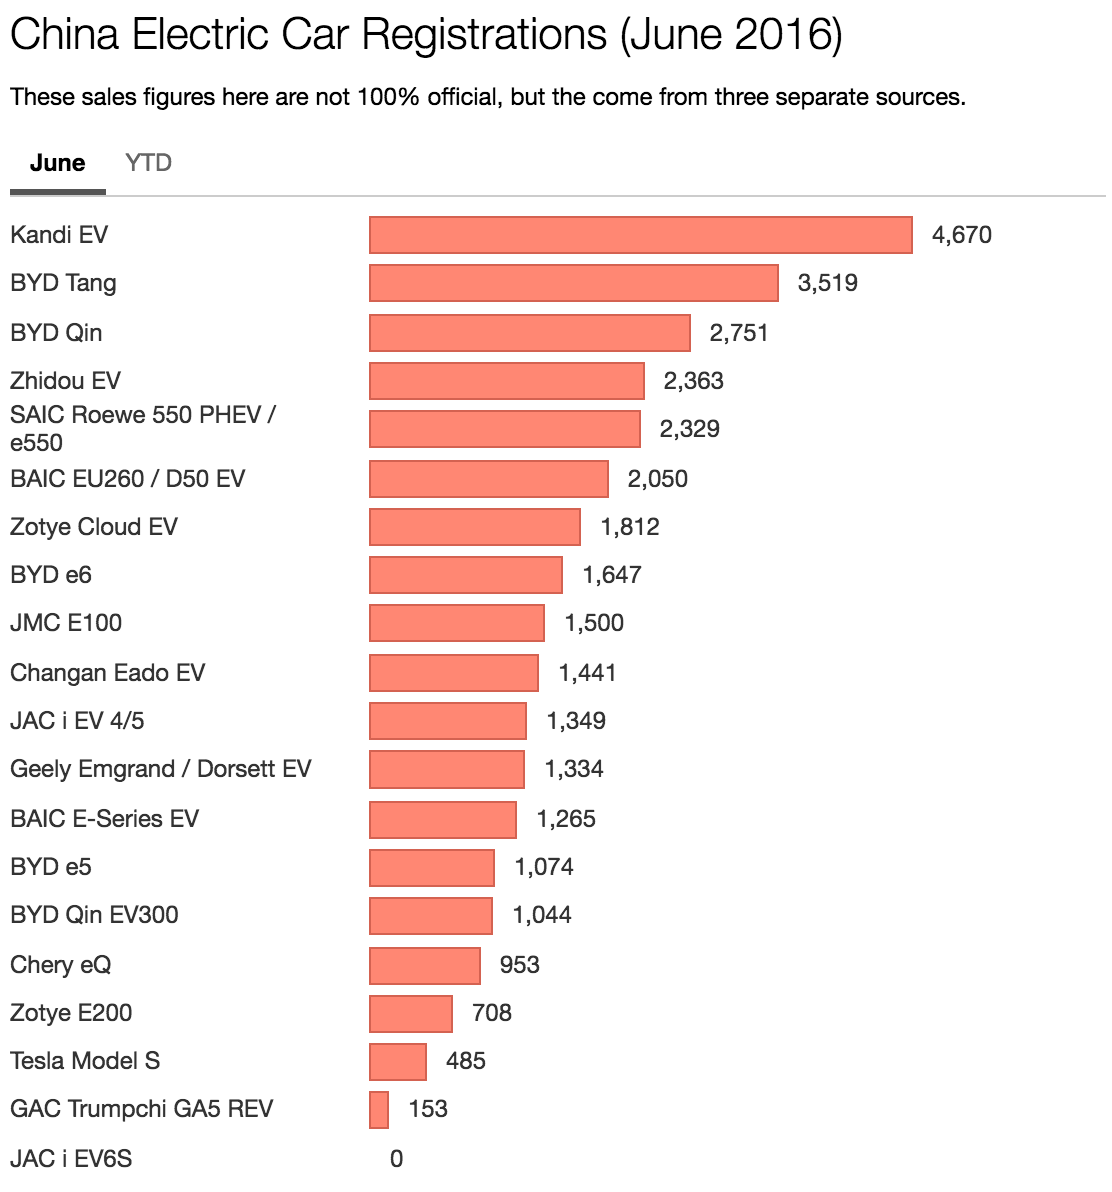 BYD Qin Reaches 3rd In Hot Market (China Electric Car